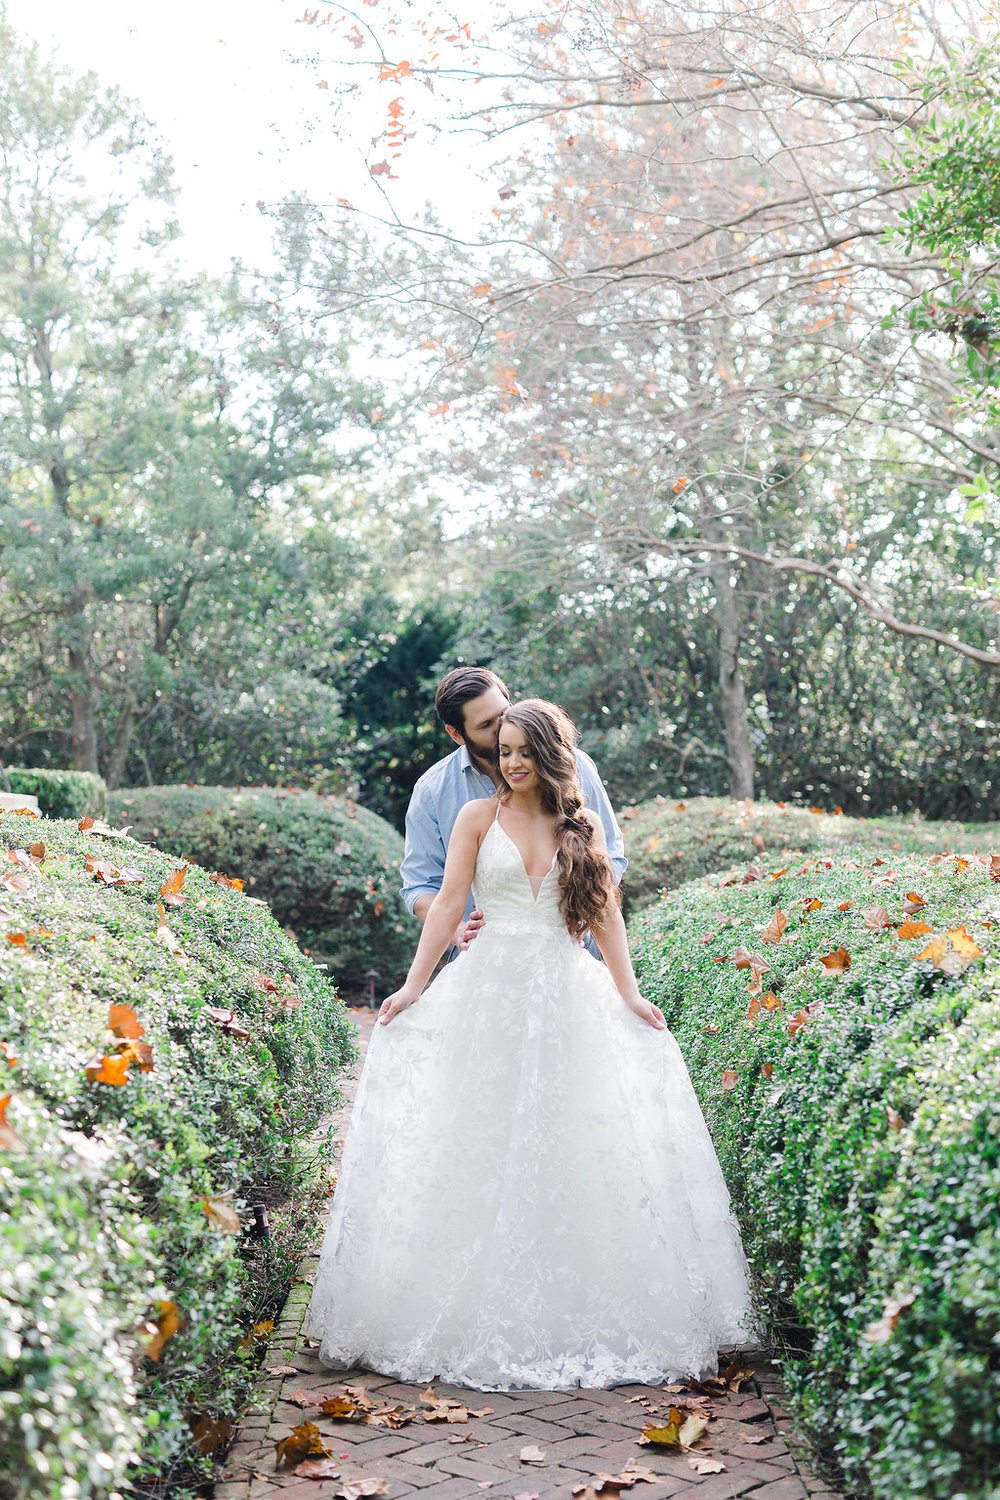 ships-of-the-sea-wedding-inspiration-savannah-wedding-planner-savannah-bridal-boutique-savannah-bridal-shop-savannah-wedding-dresses-blush-by-hayley-paige-fleur-de-lis-bridal-gown-savannah-bride.JPG